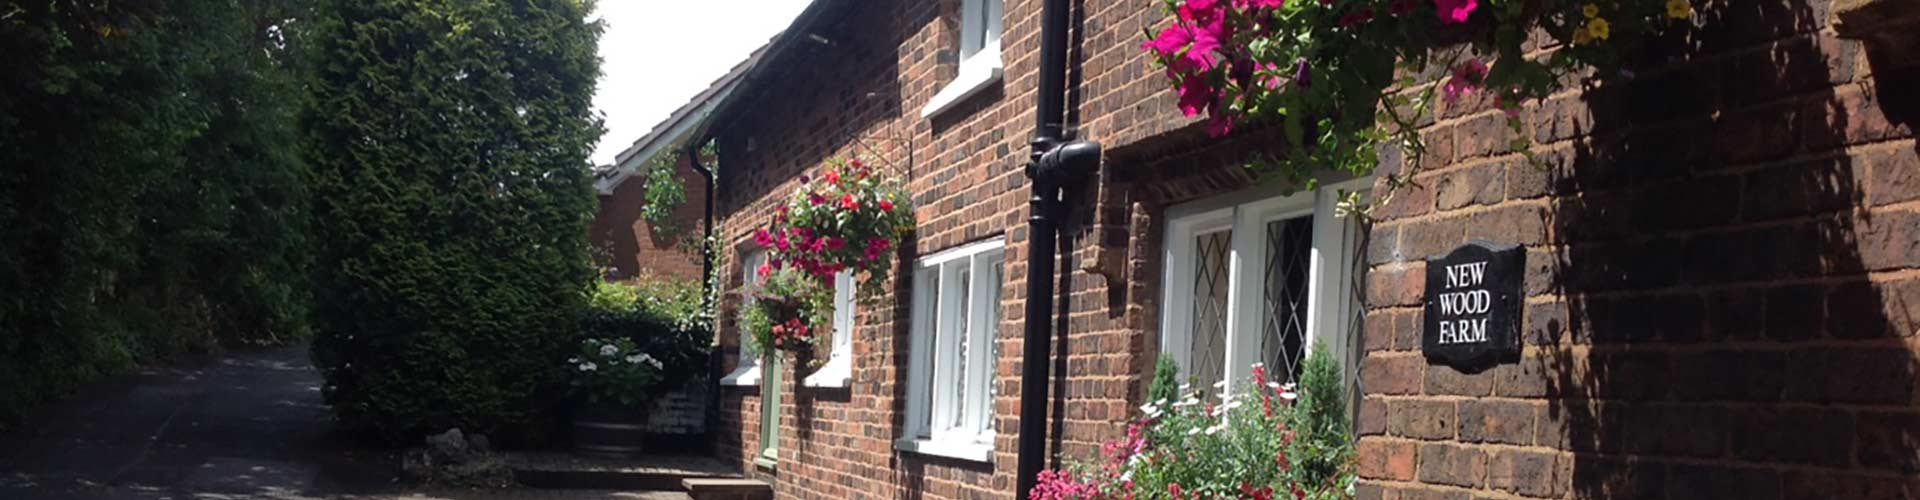 New Wood Farm Barn and Stable